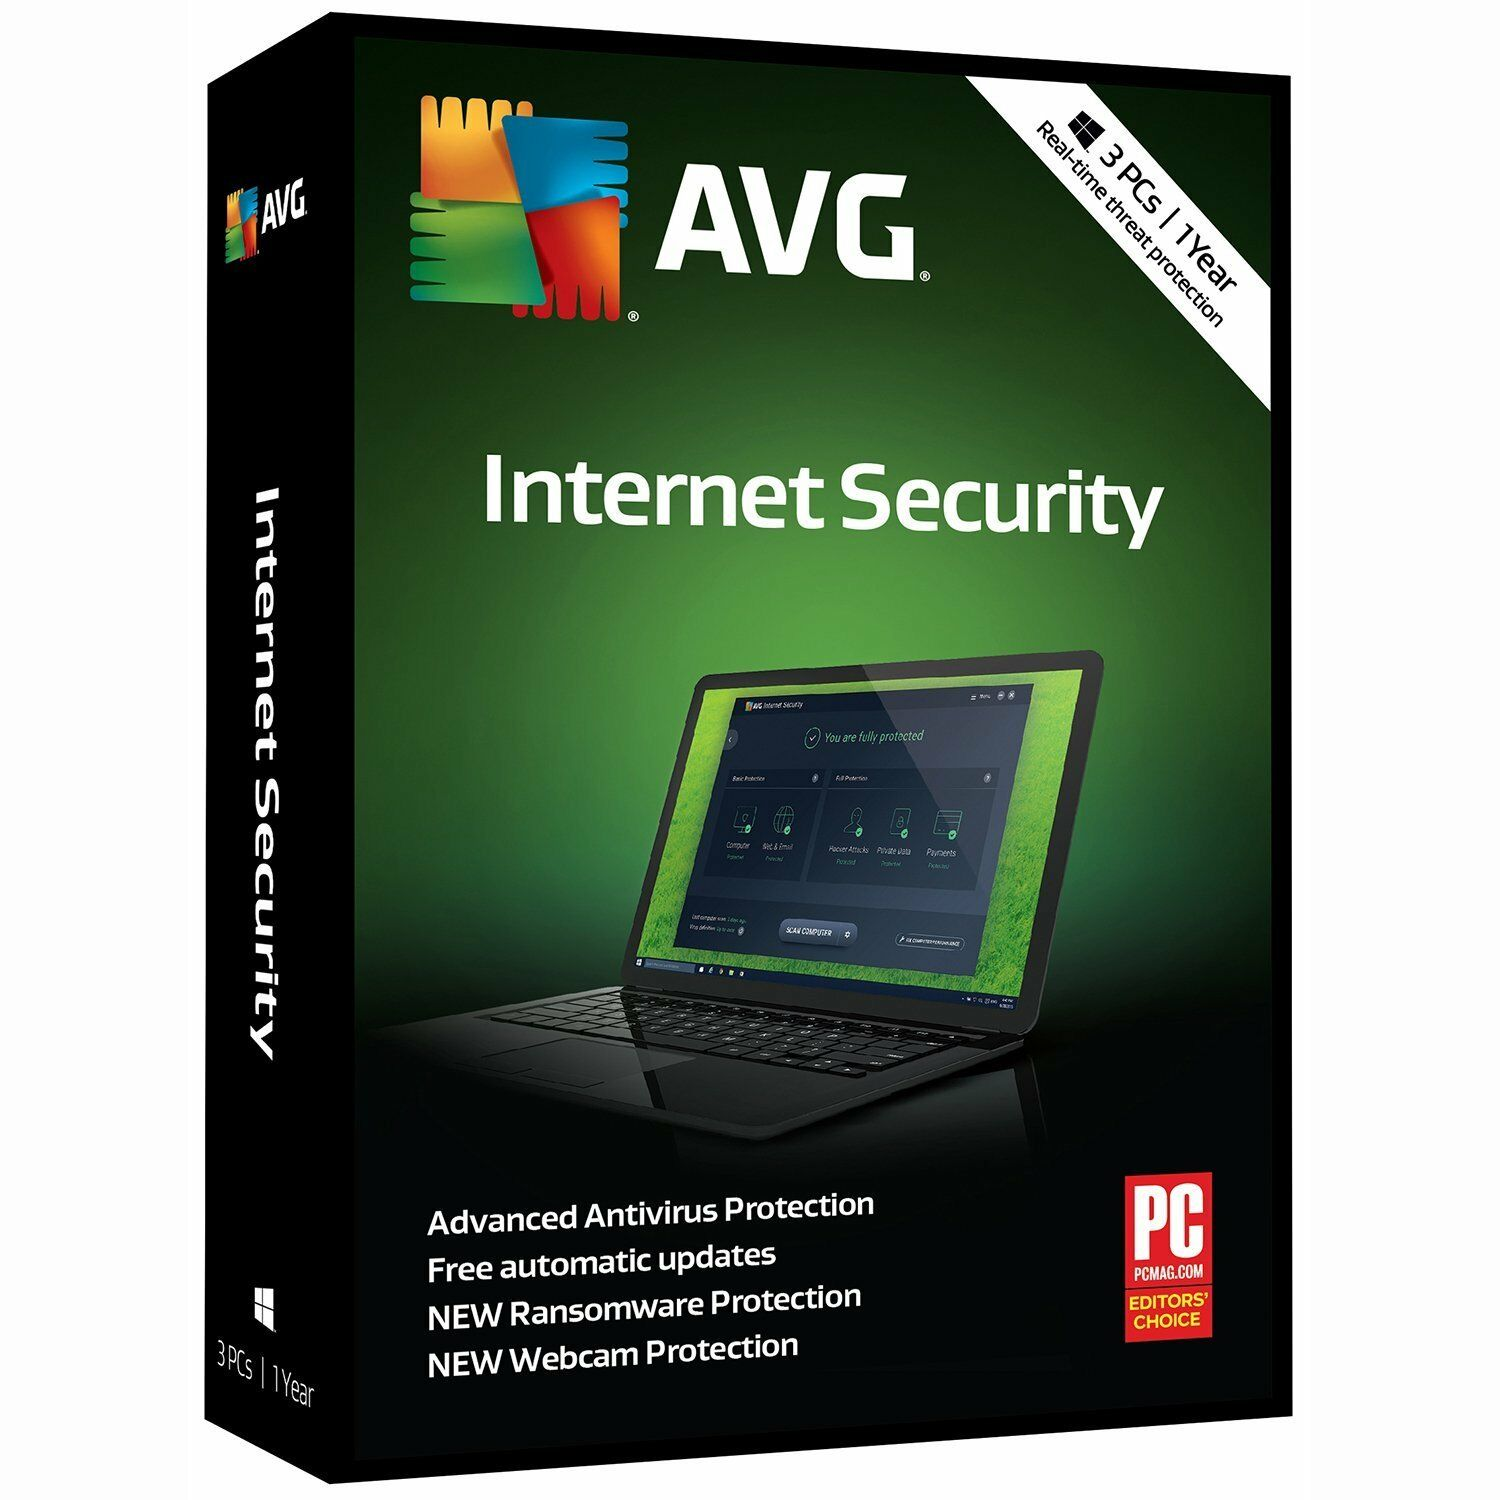 avg internet security 2019 windows 1 year subscription. Black Bedroom Furniture Sets. Home Design Ideas